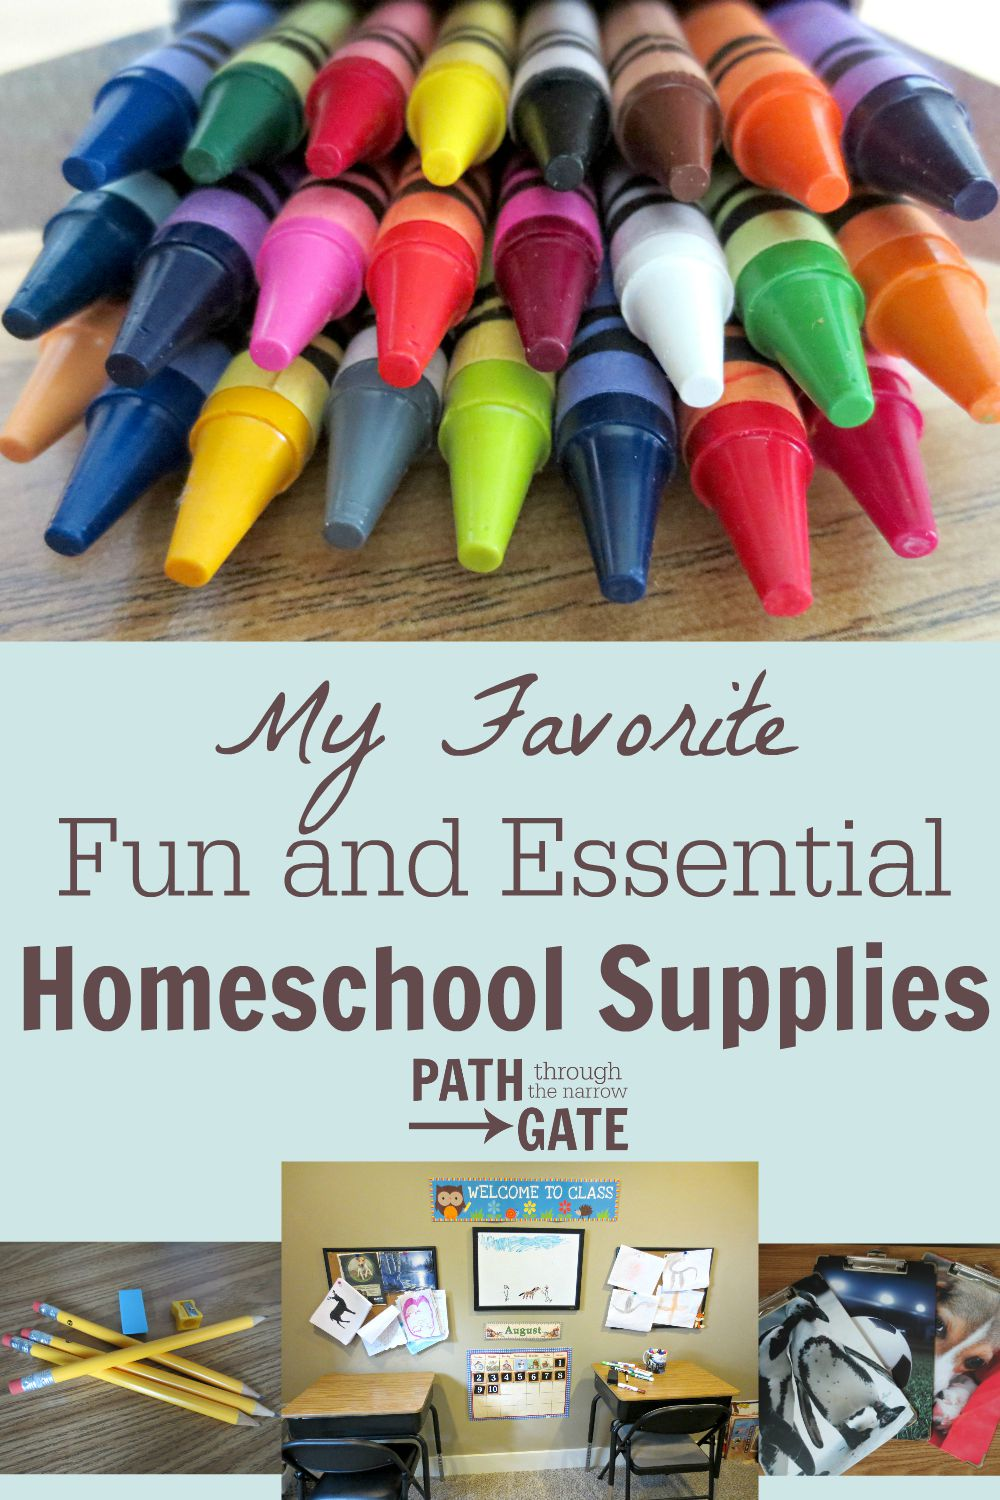 Its almost time to start school! Here is a list of some of my favorite fun and essential homeschool supplies.